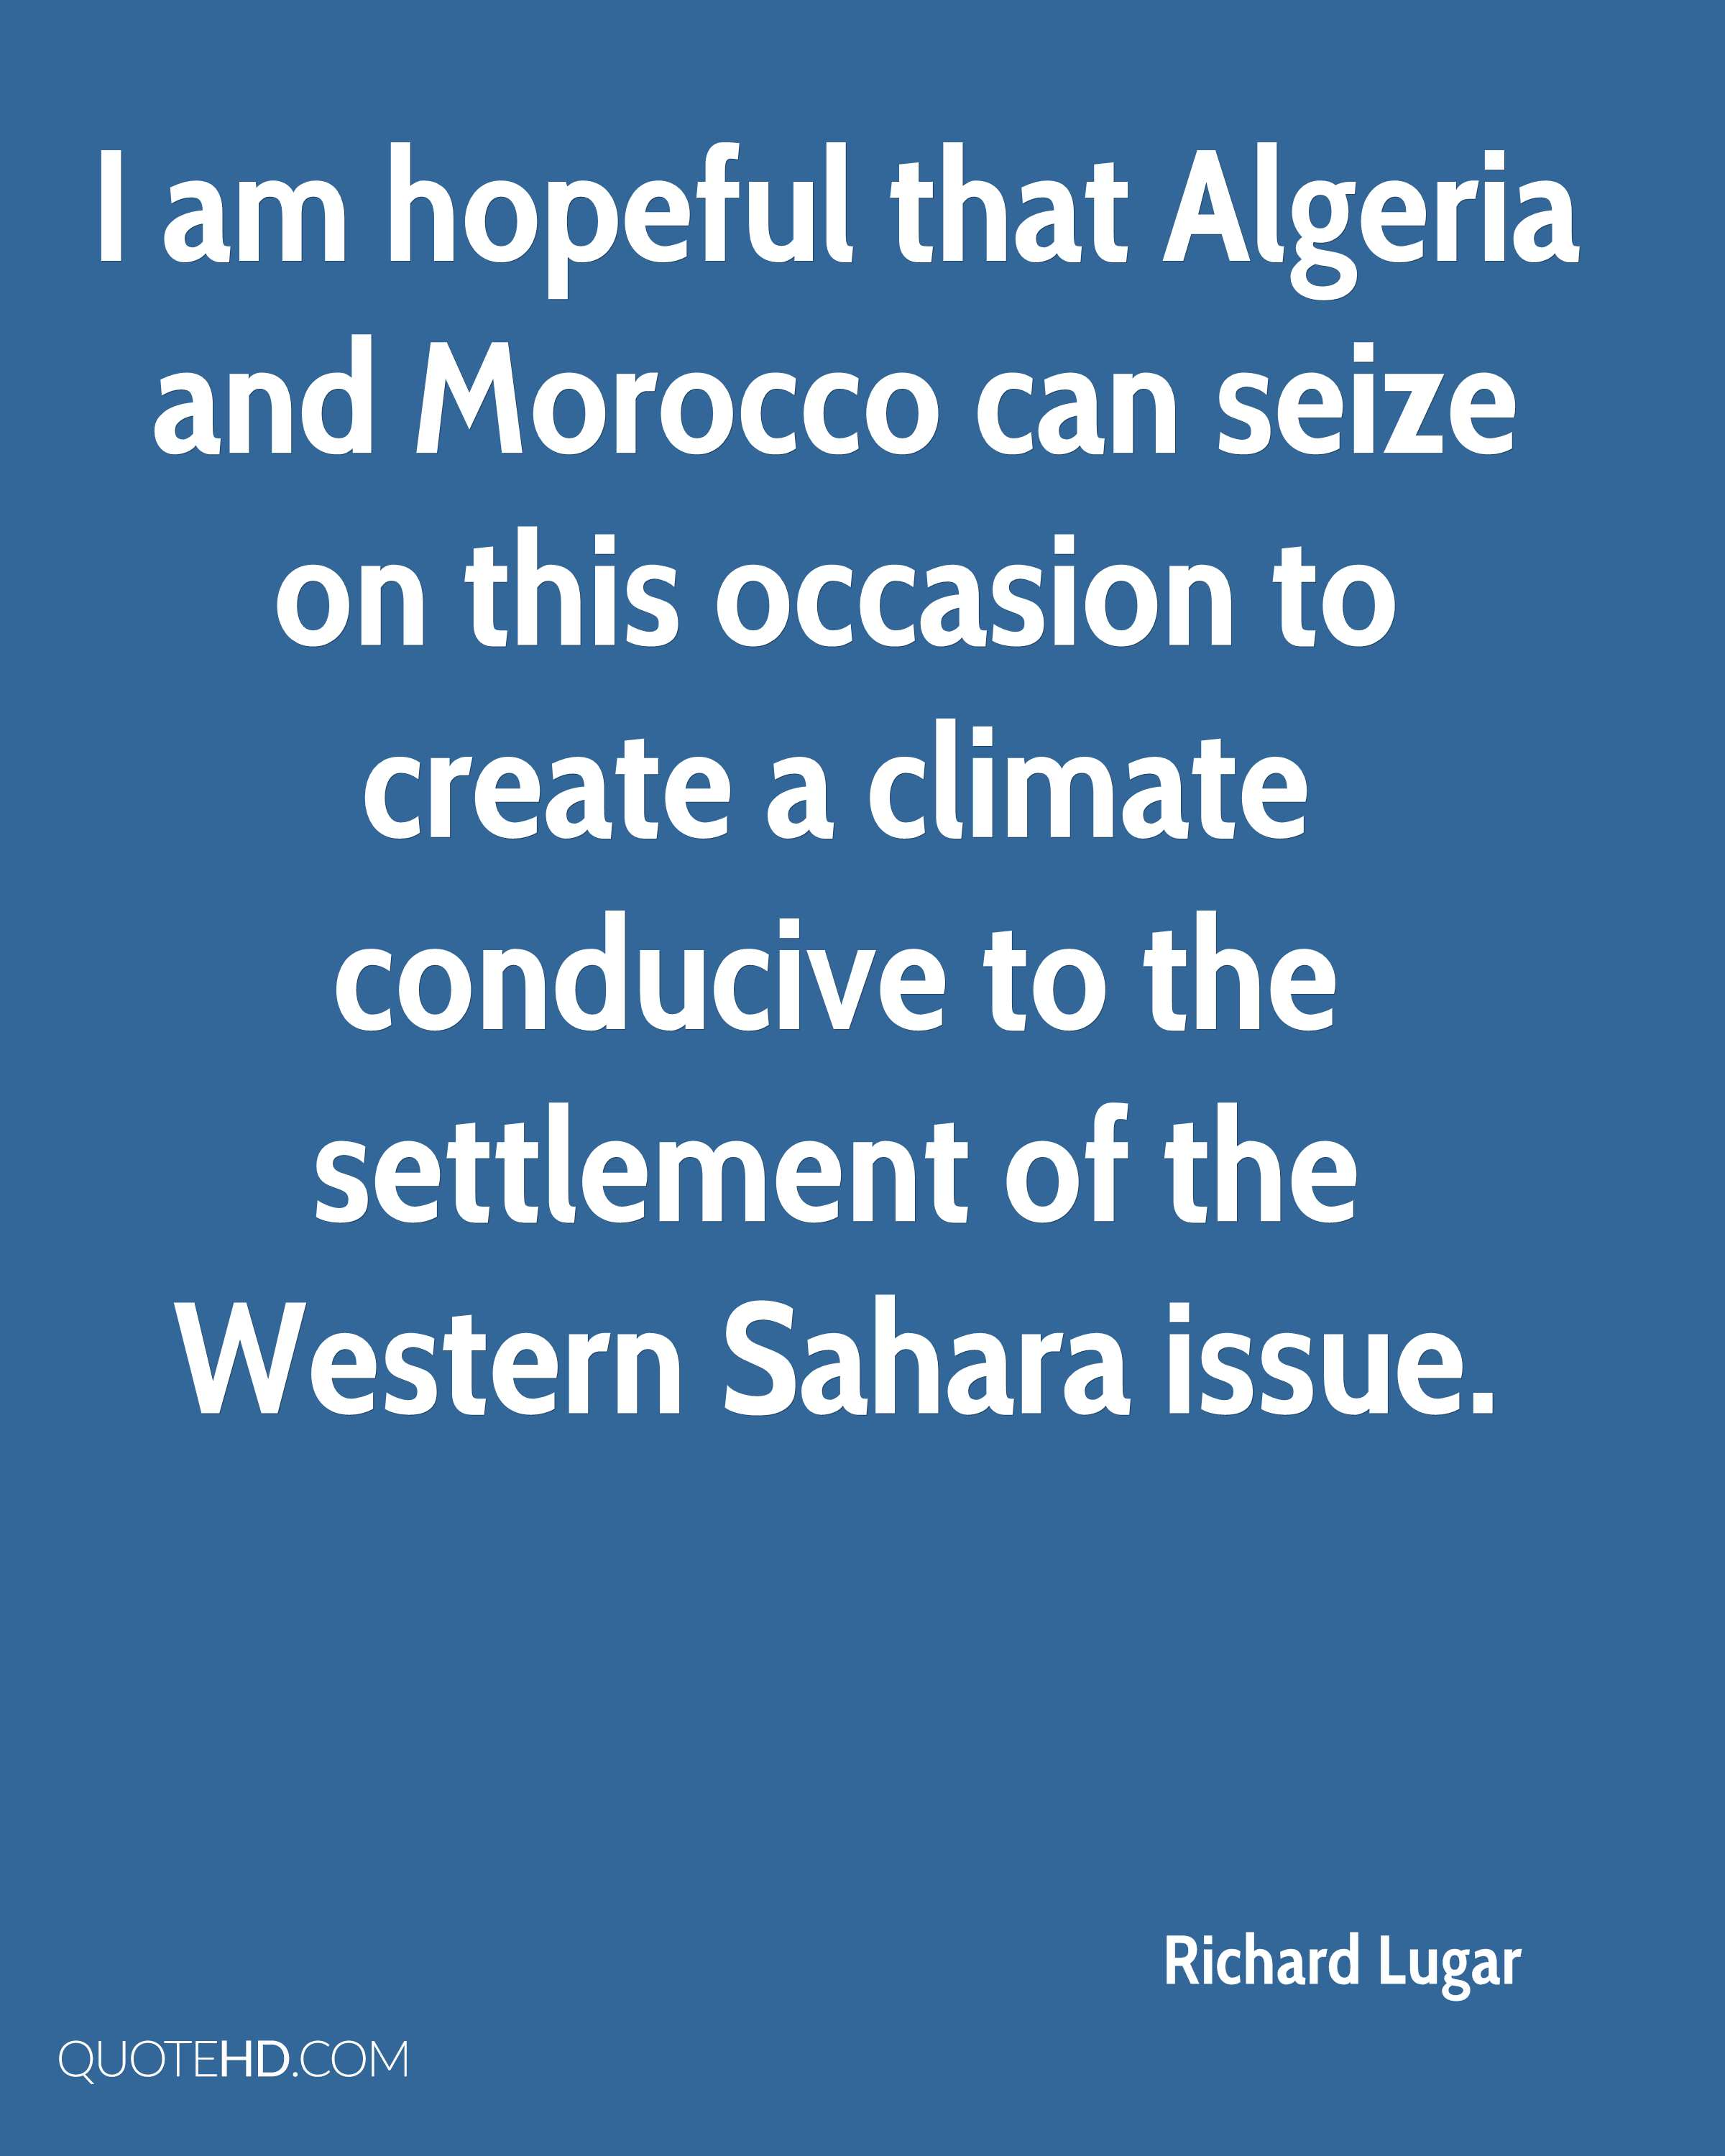 I am hopeful that Algeria and Morocco can seize on this occasion to create a climate conducive to the settlement of the Western Sahara issue.